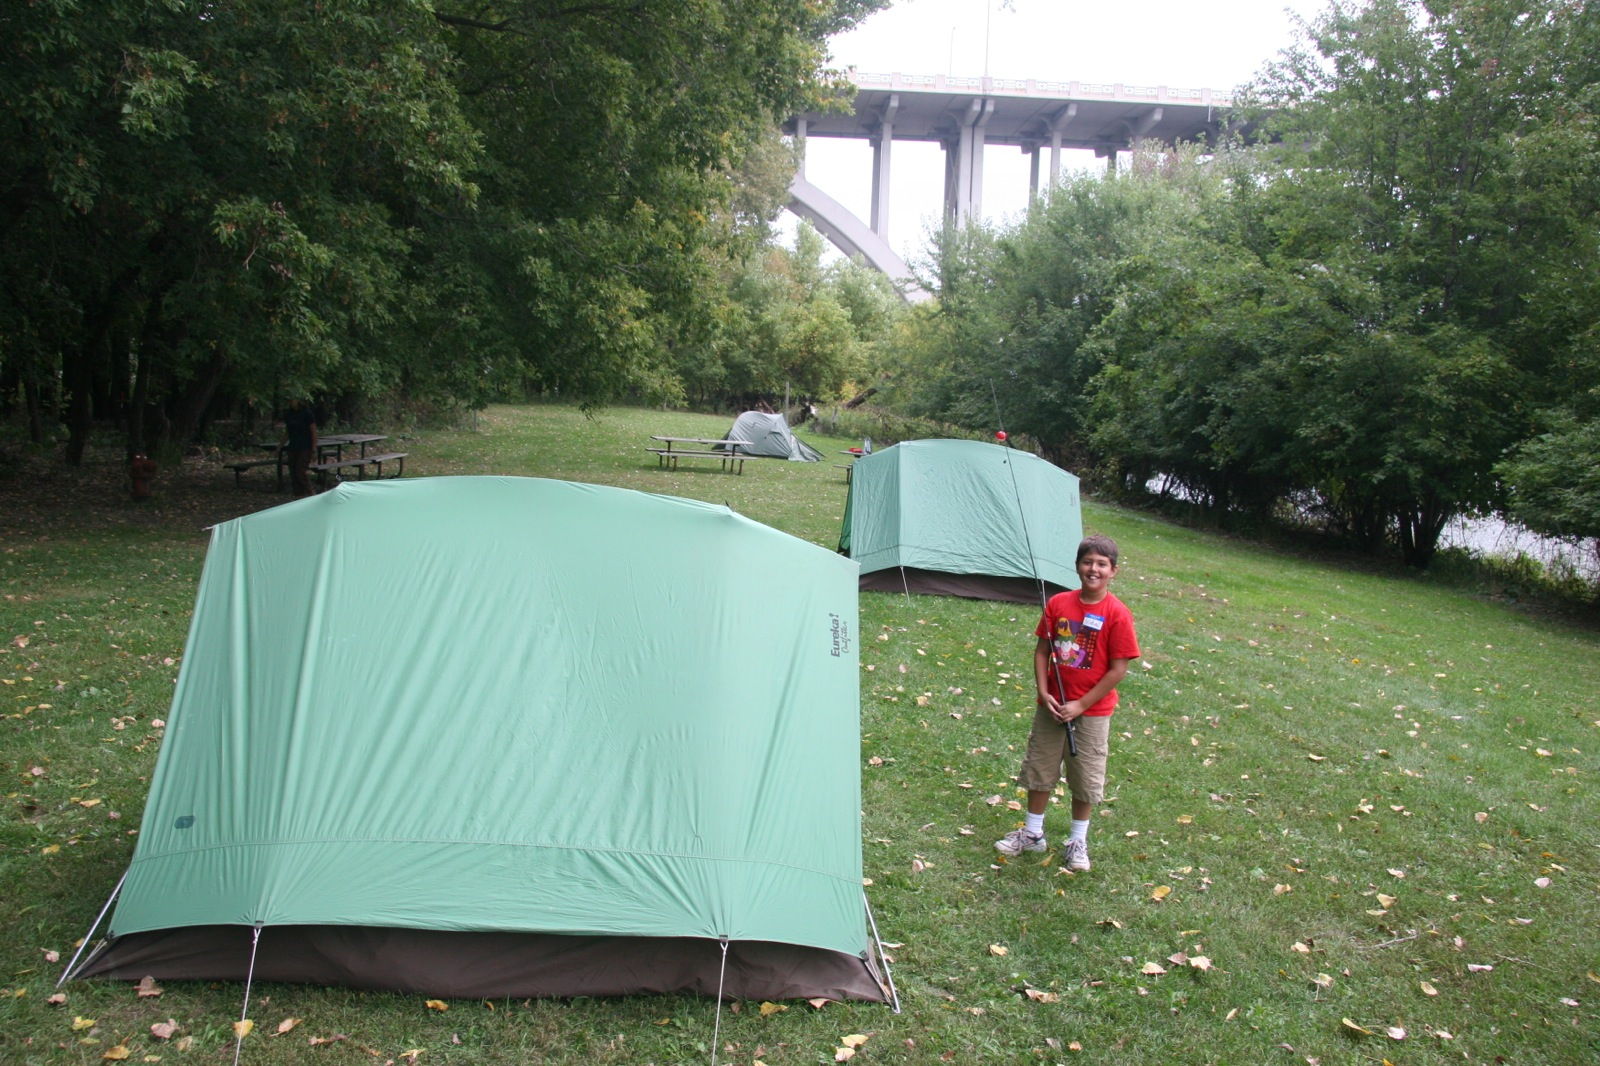 A young boy stands next to his tent with a fishing pole at the campground near Fort Snelling.